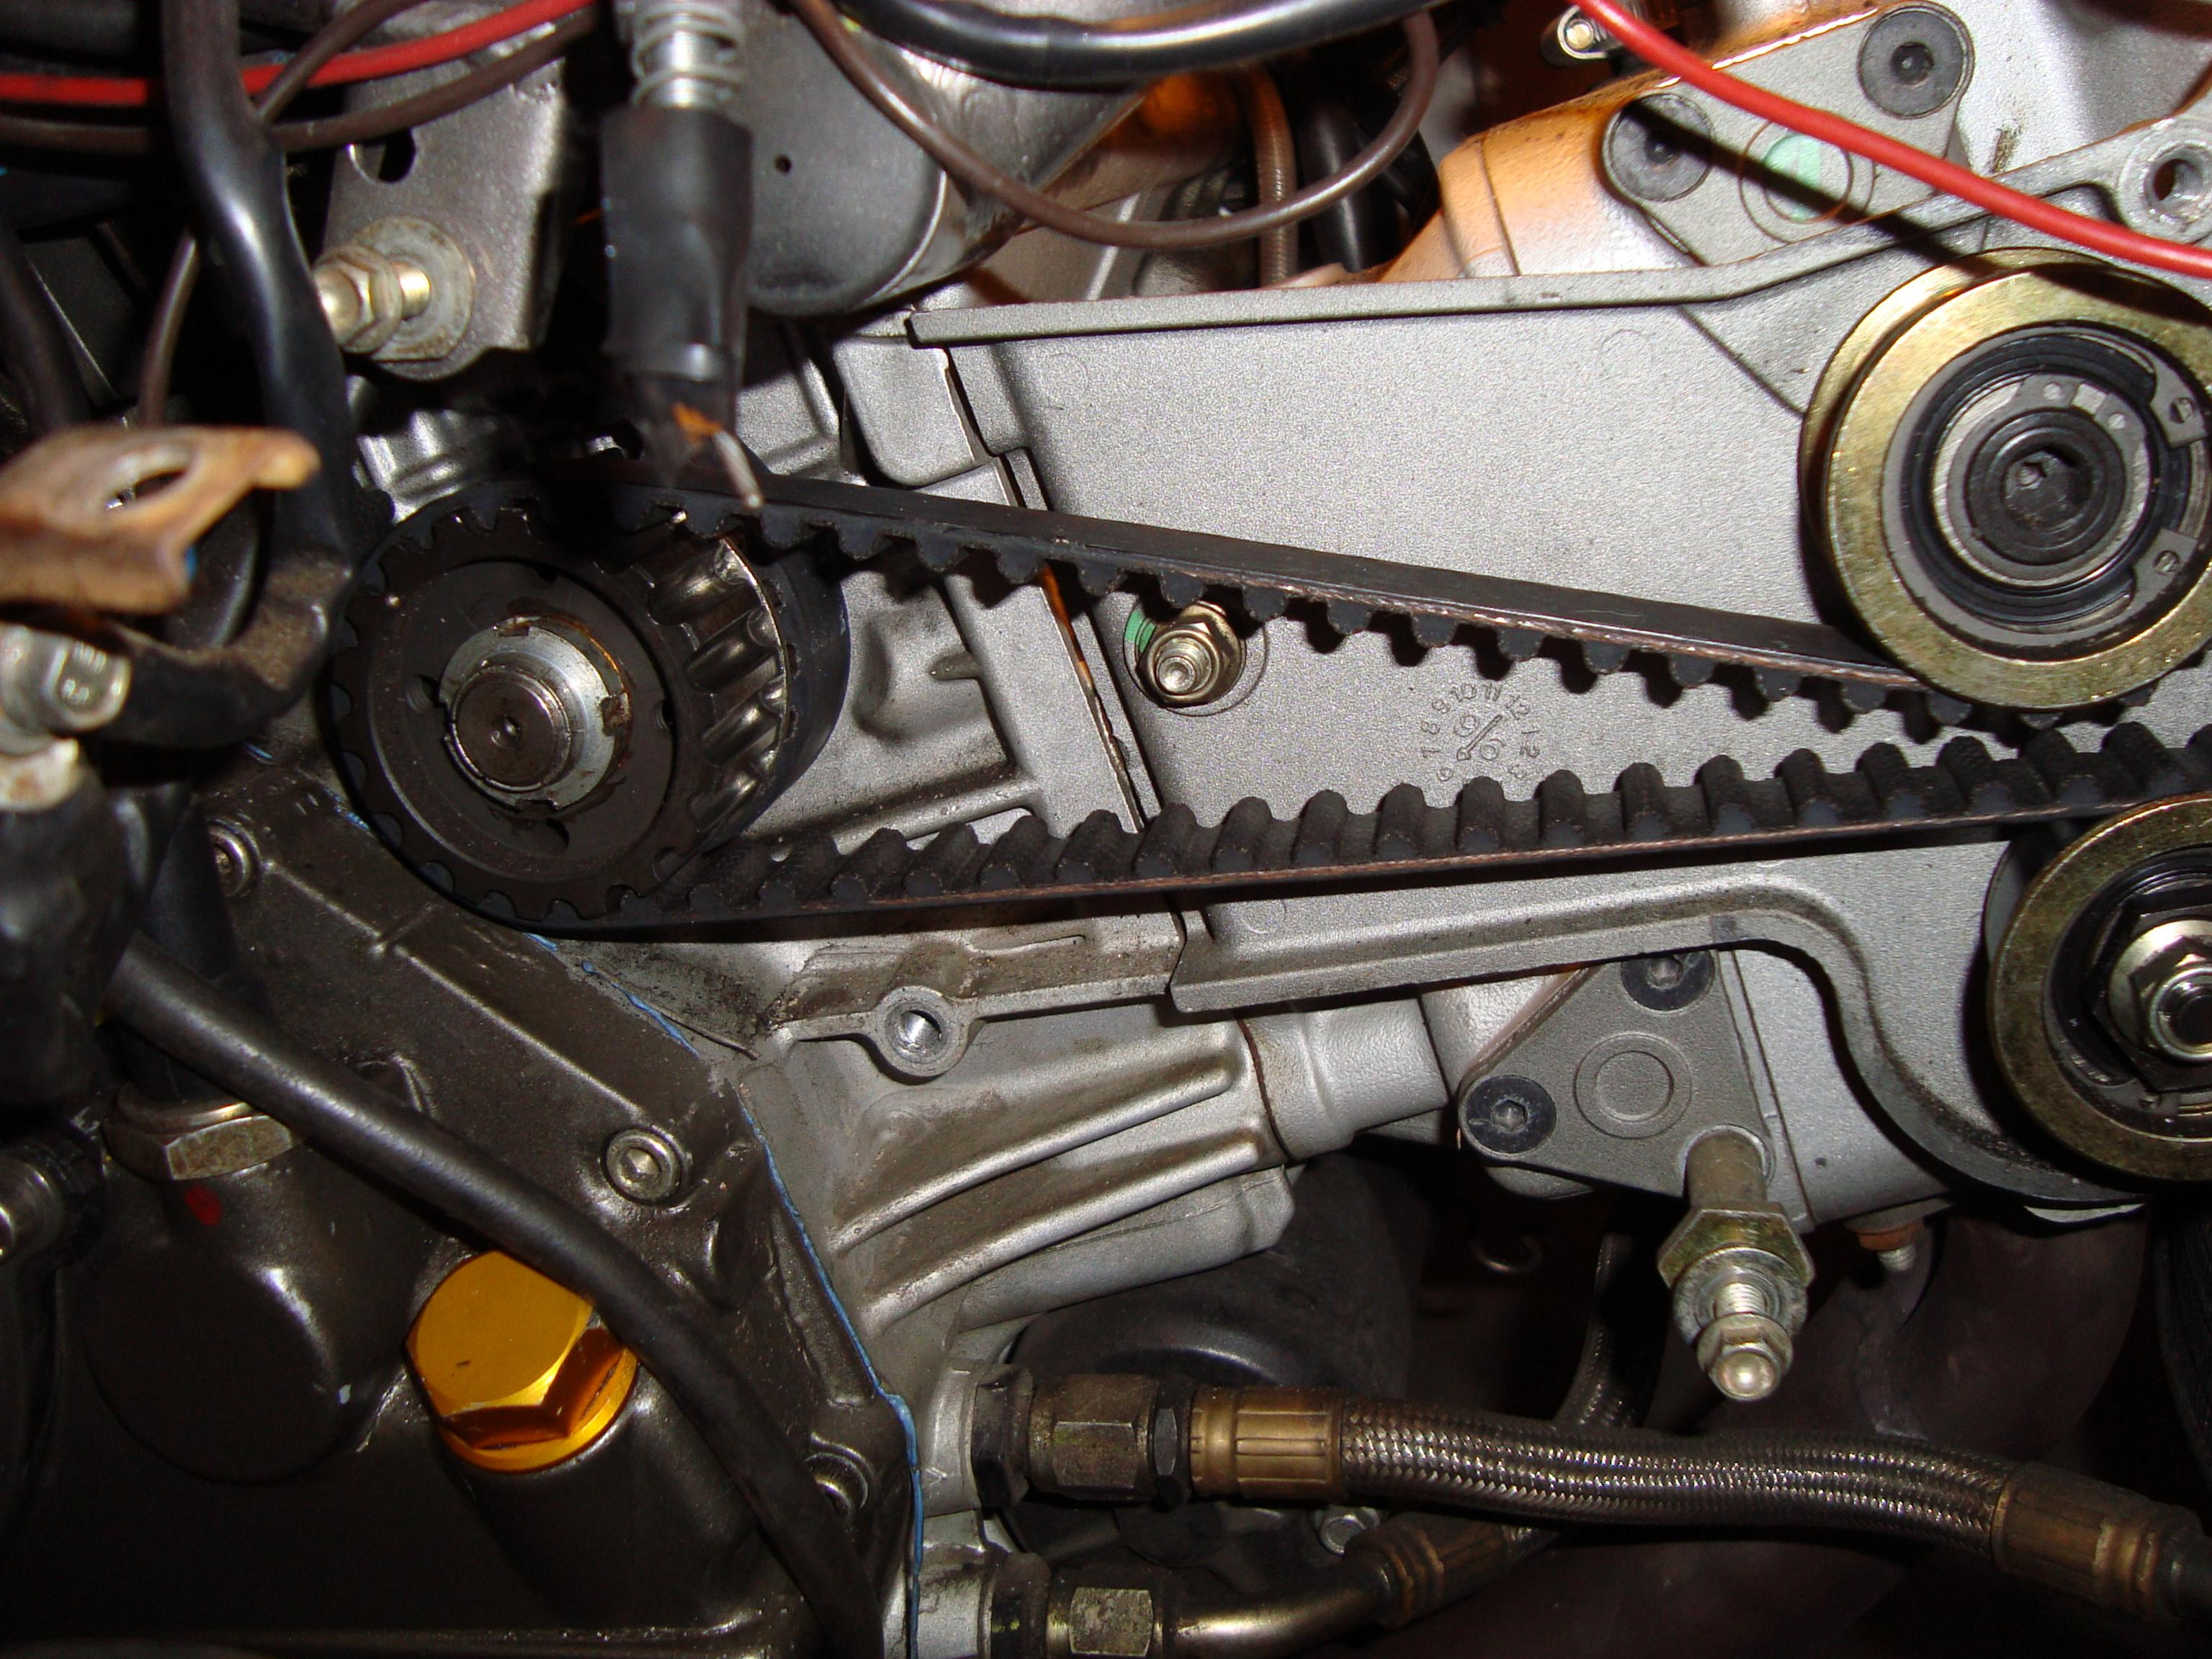 When To Change Timing Belt >> 'urgent' timing belt change problems :( - Ducati.ms - The ...